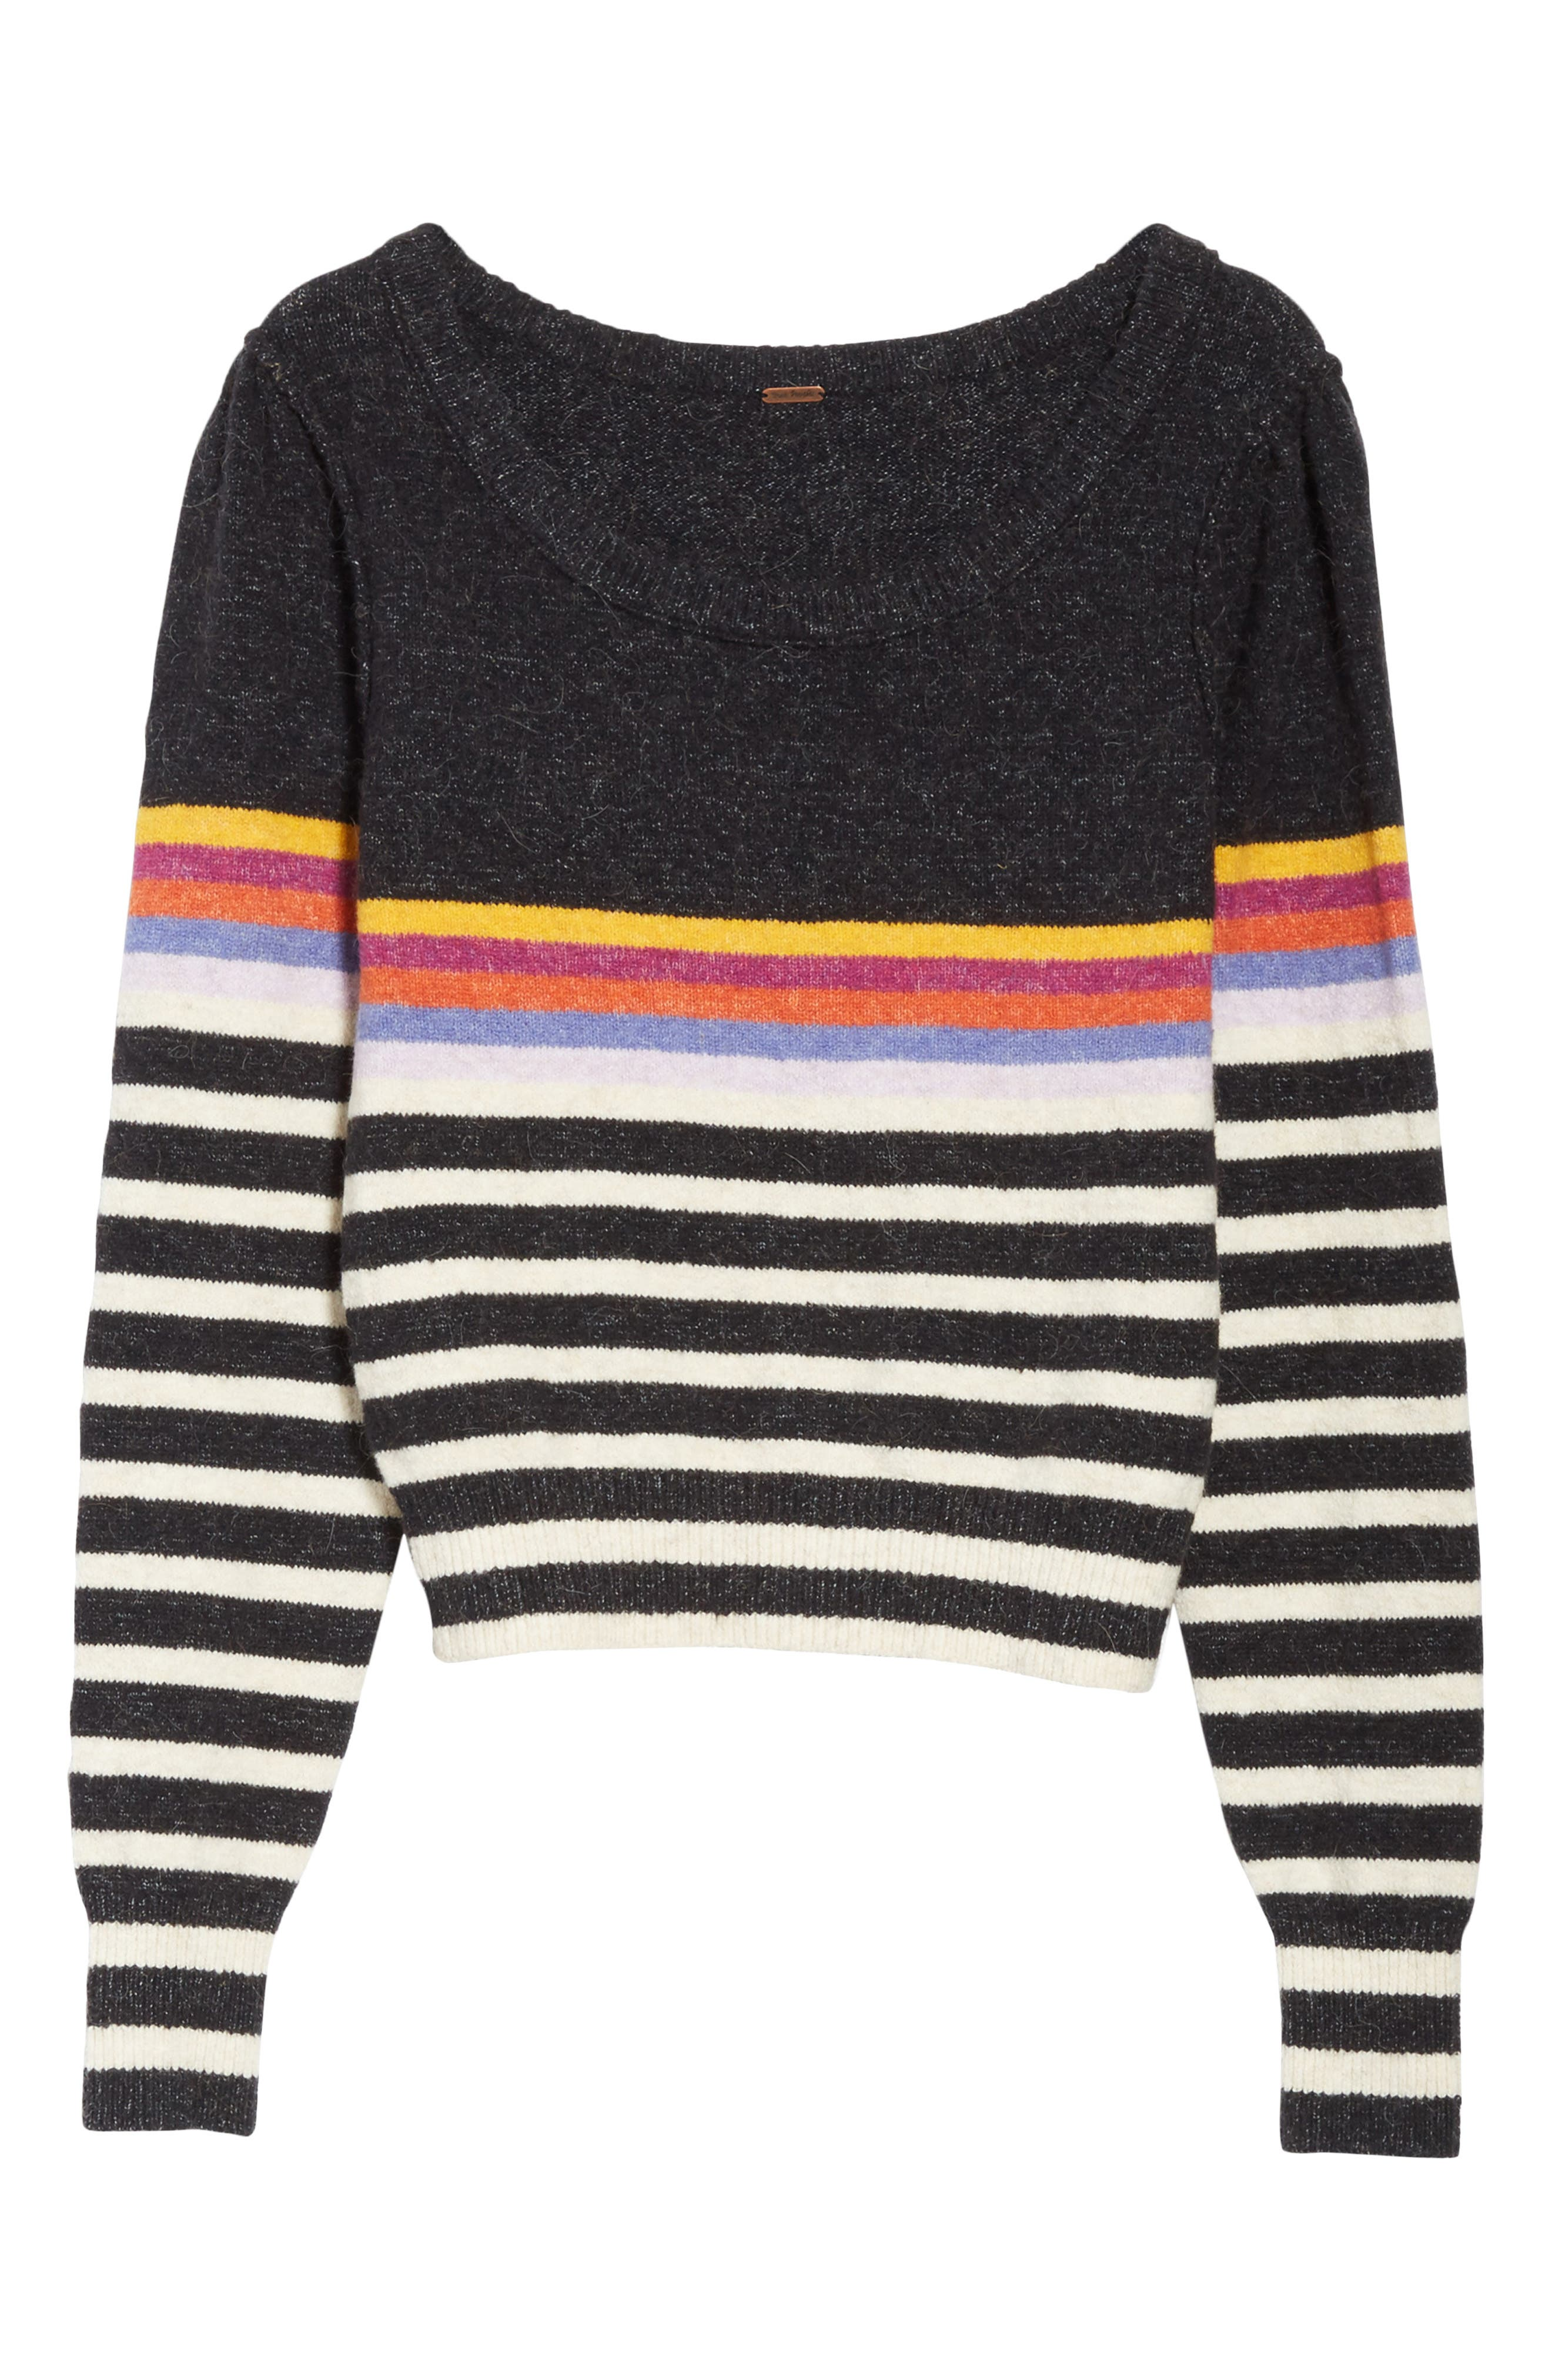 Complete Me Sweater,                             Alternate thumbnail 11, color,